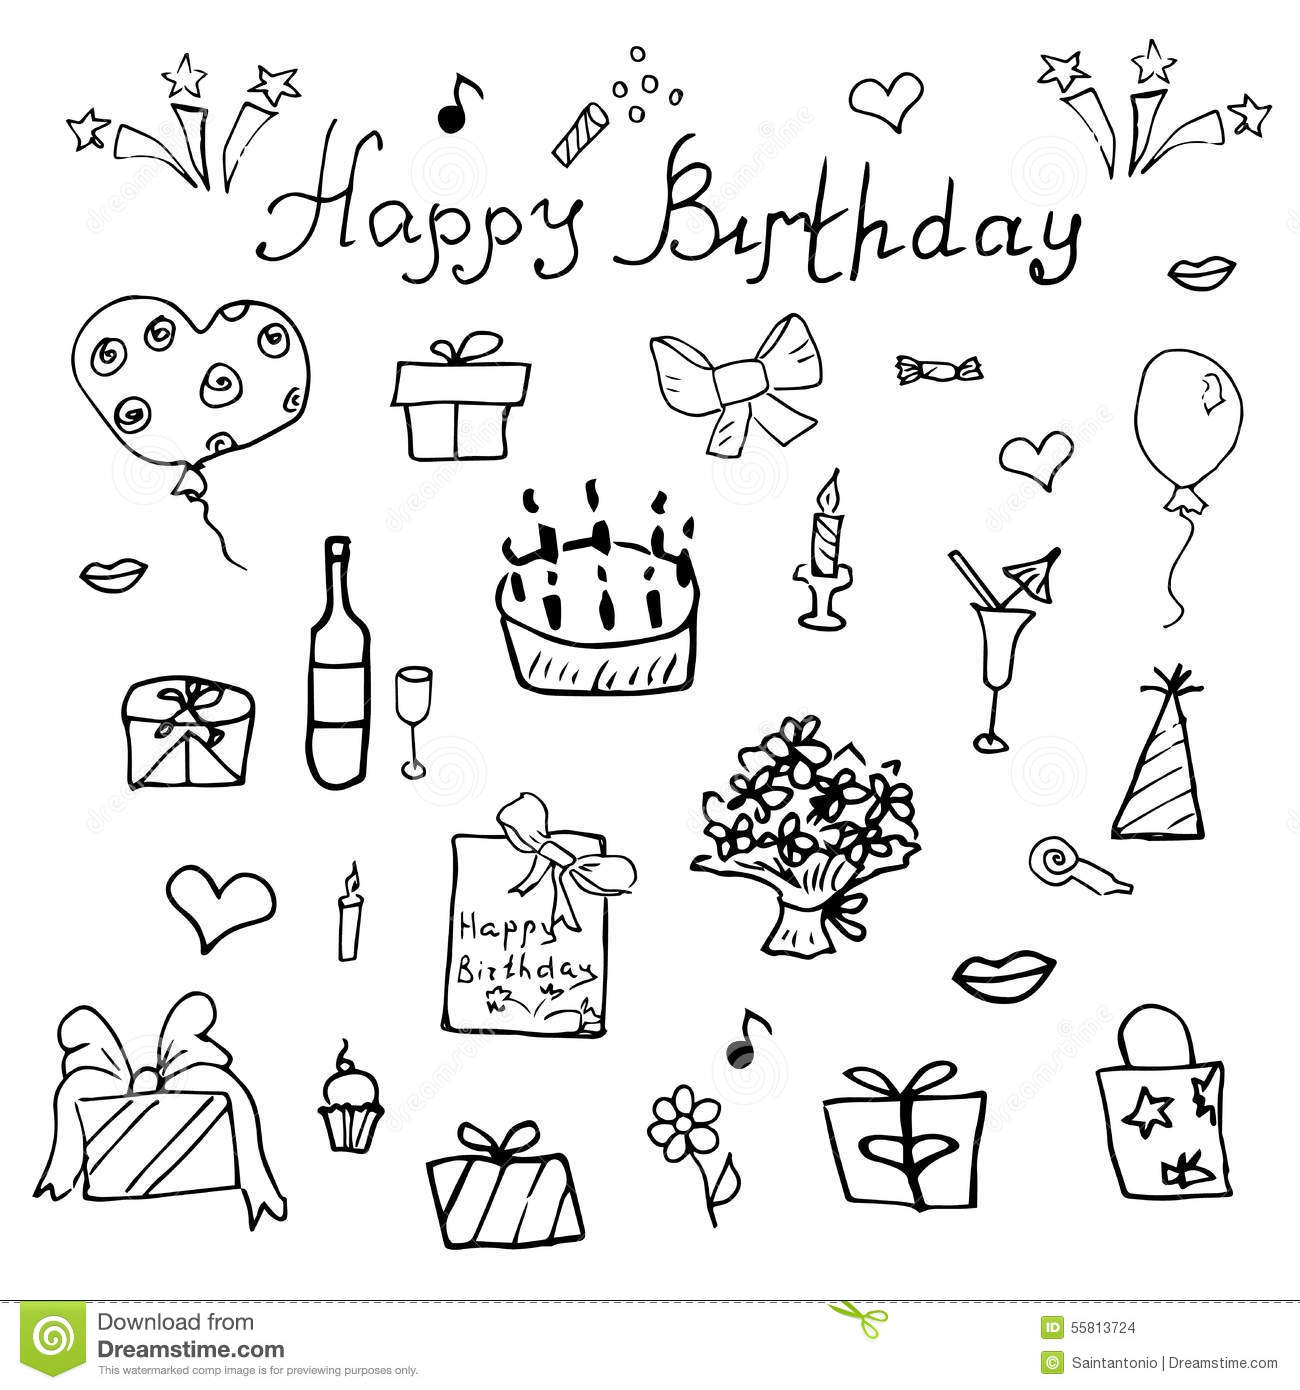 simple birthday drawings ; birthday-elements-hand-drawn-set-birthday-cake-balloons-gift-festive-attributes-children-drawing-doodle-collection-i-55813724